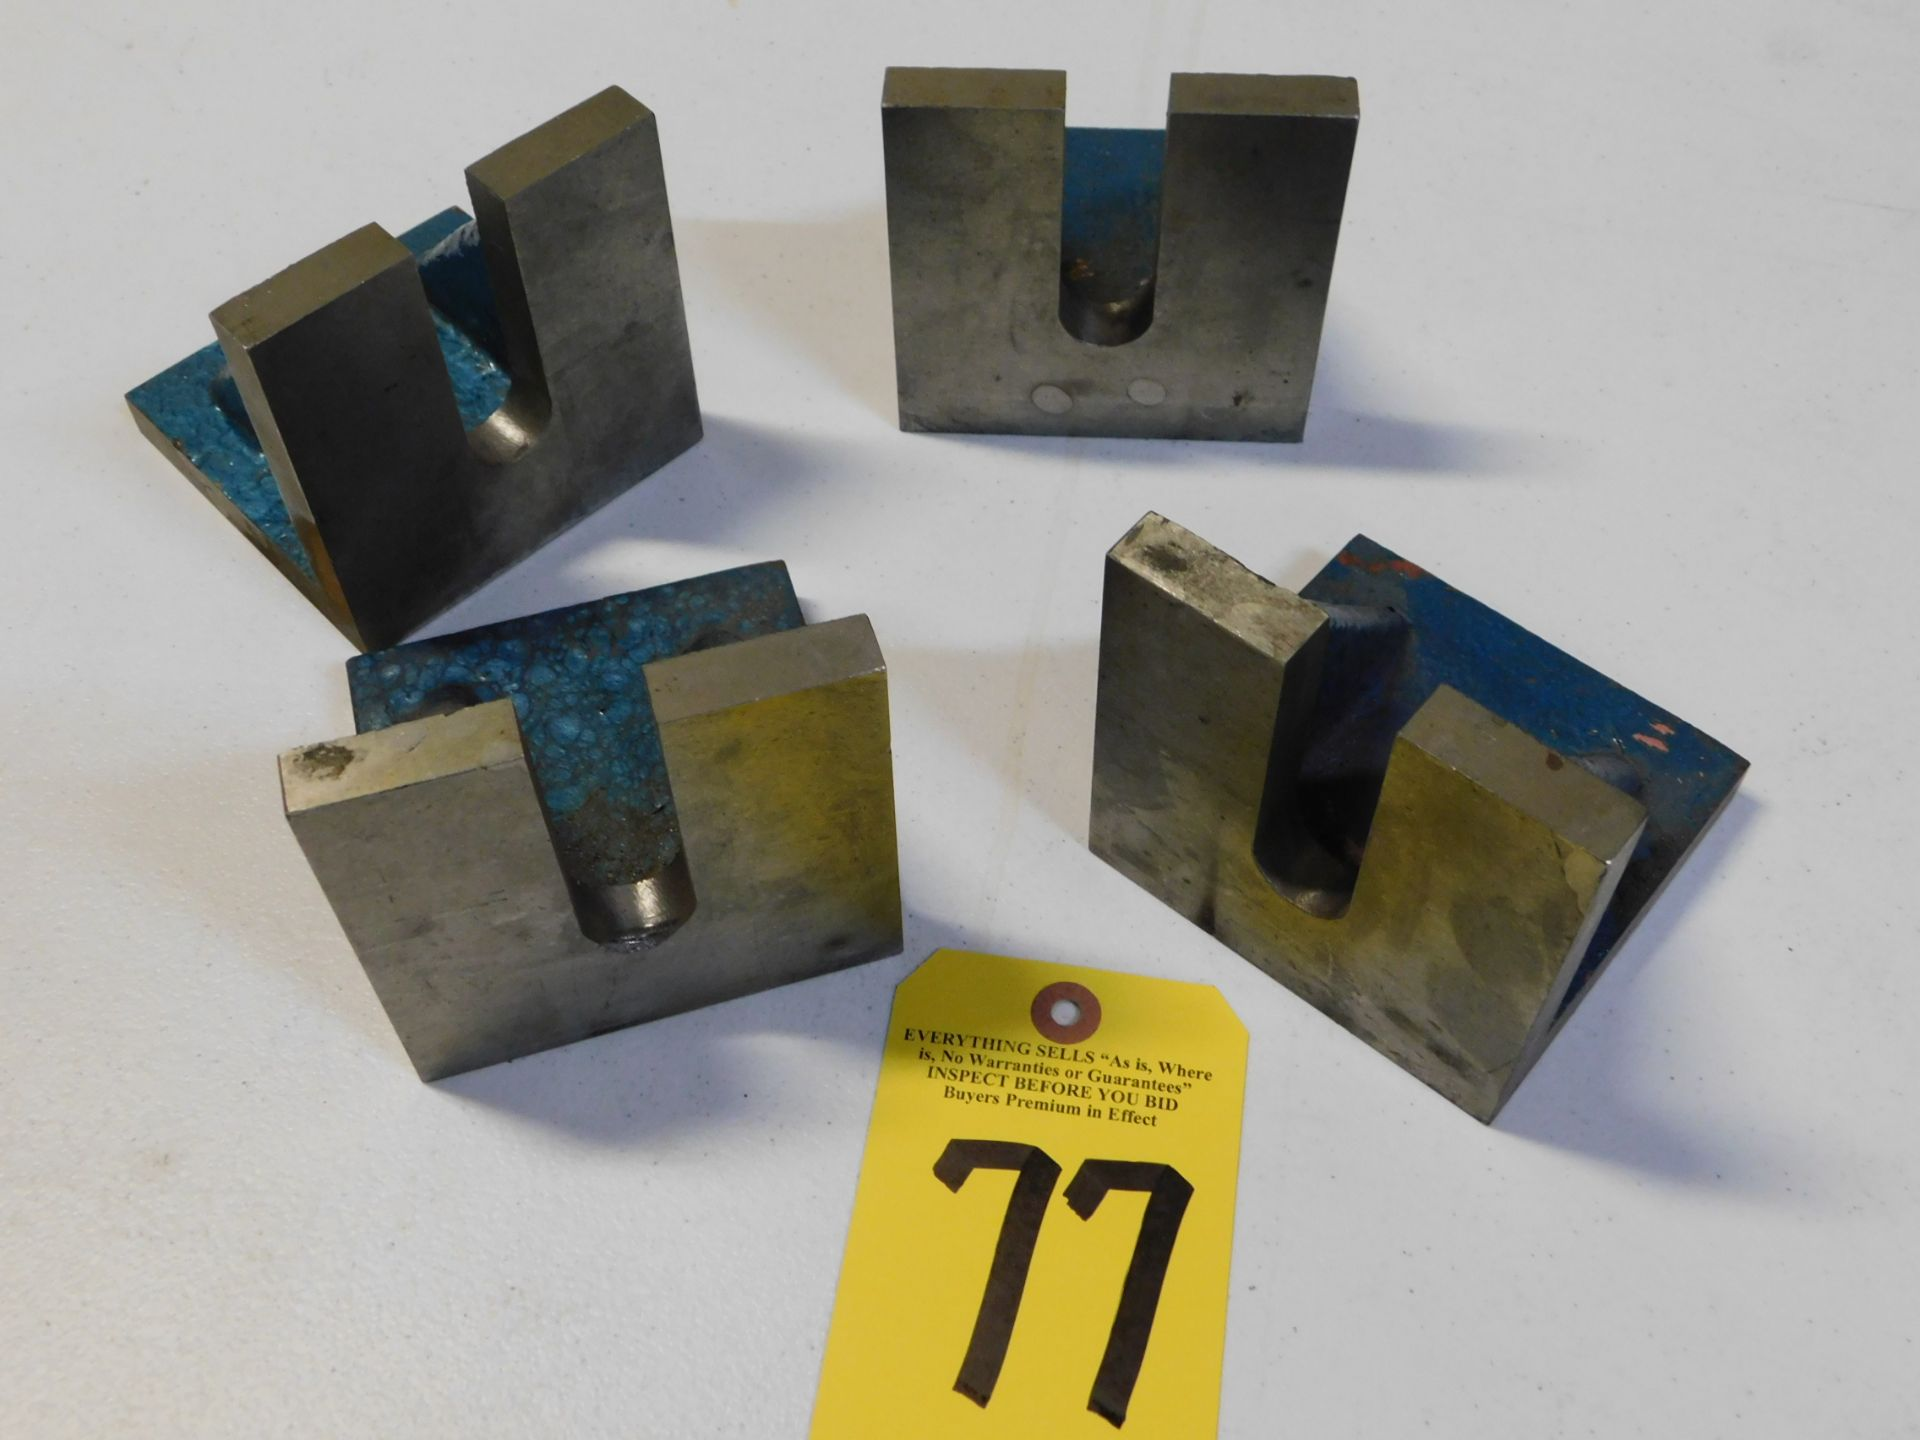 "Lot 77 - (4) Angle Plates, 4"" x 4"" x 4"", Lot Location 3204 Olympia Dr. A, Lafayette, IN 47909"